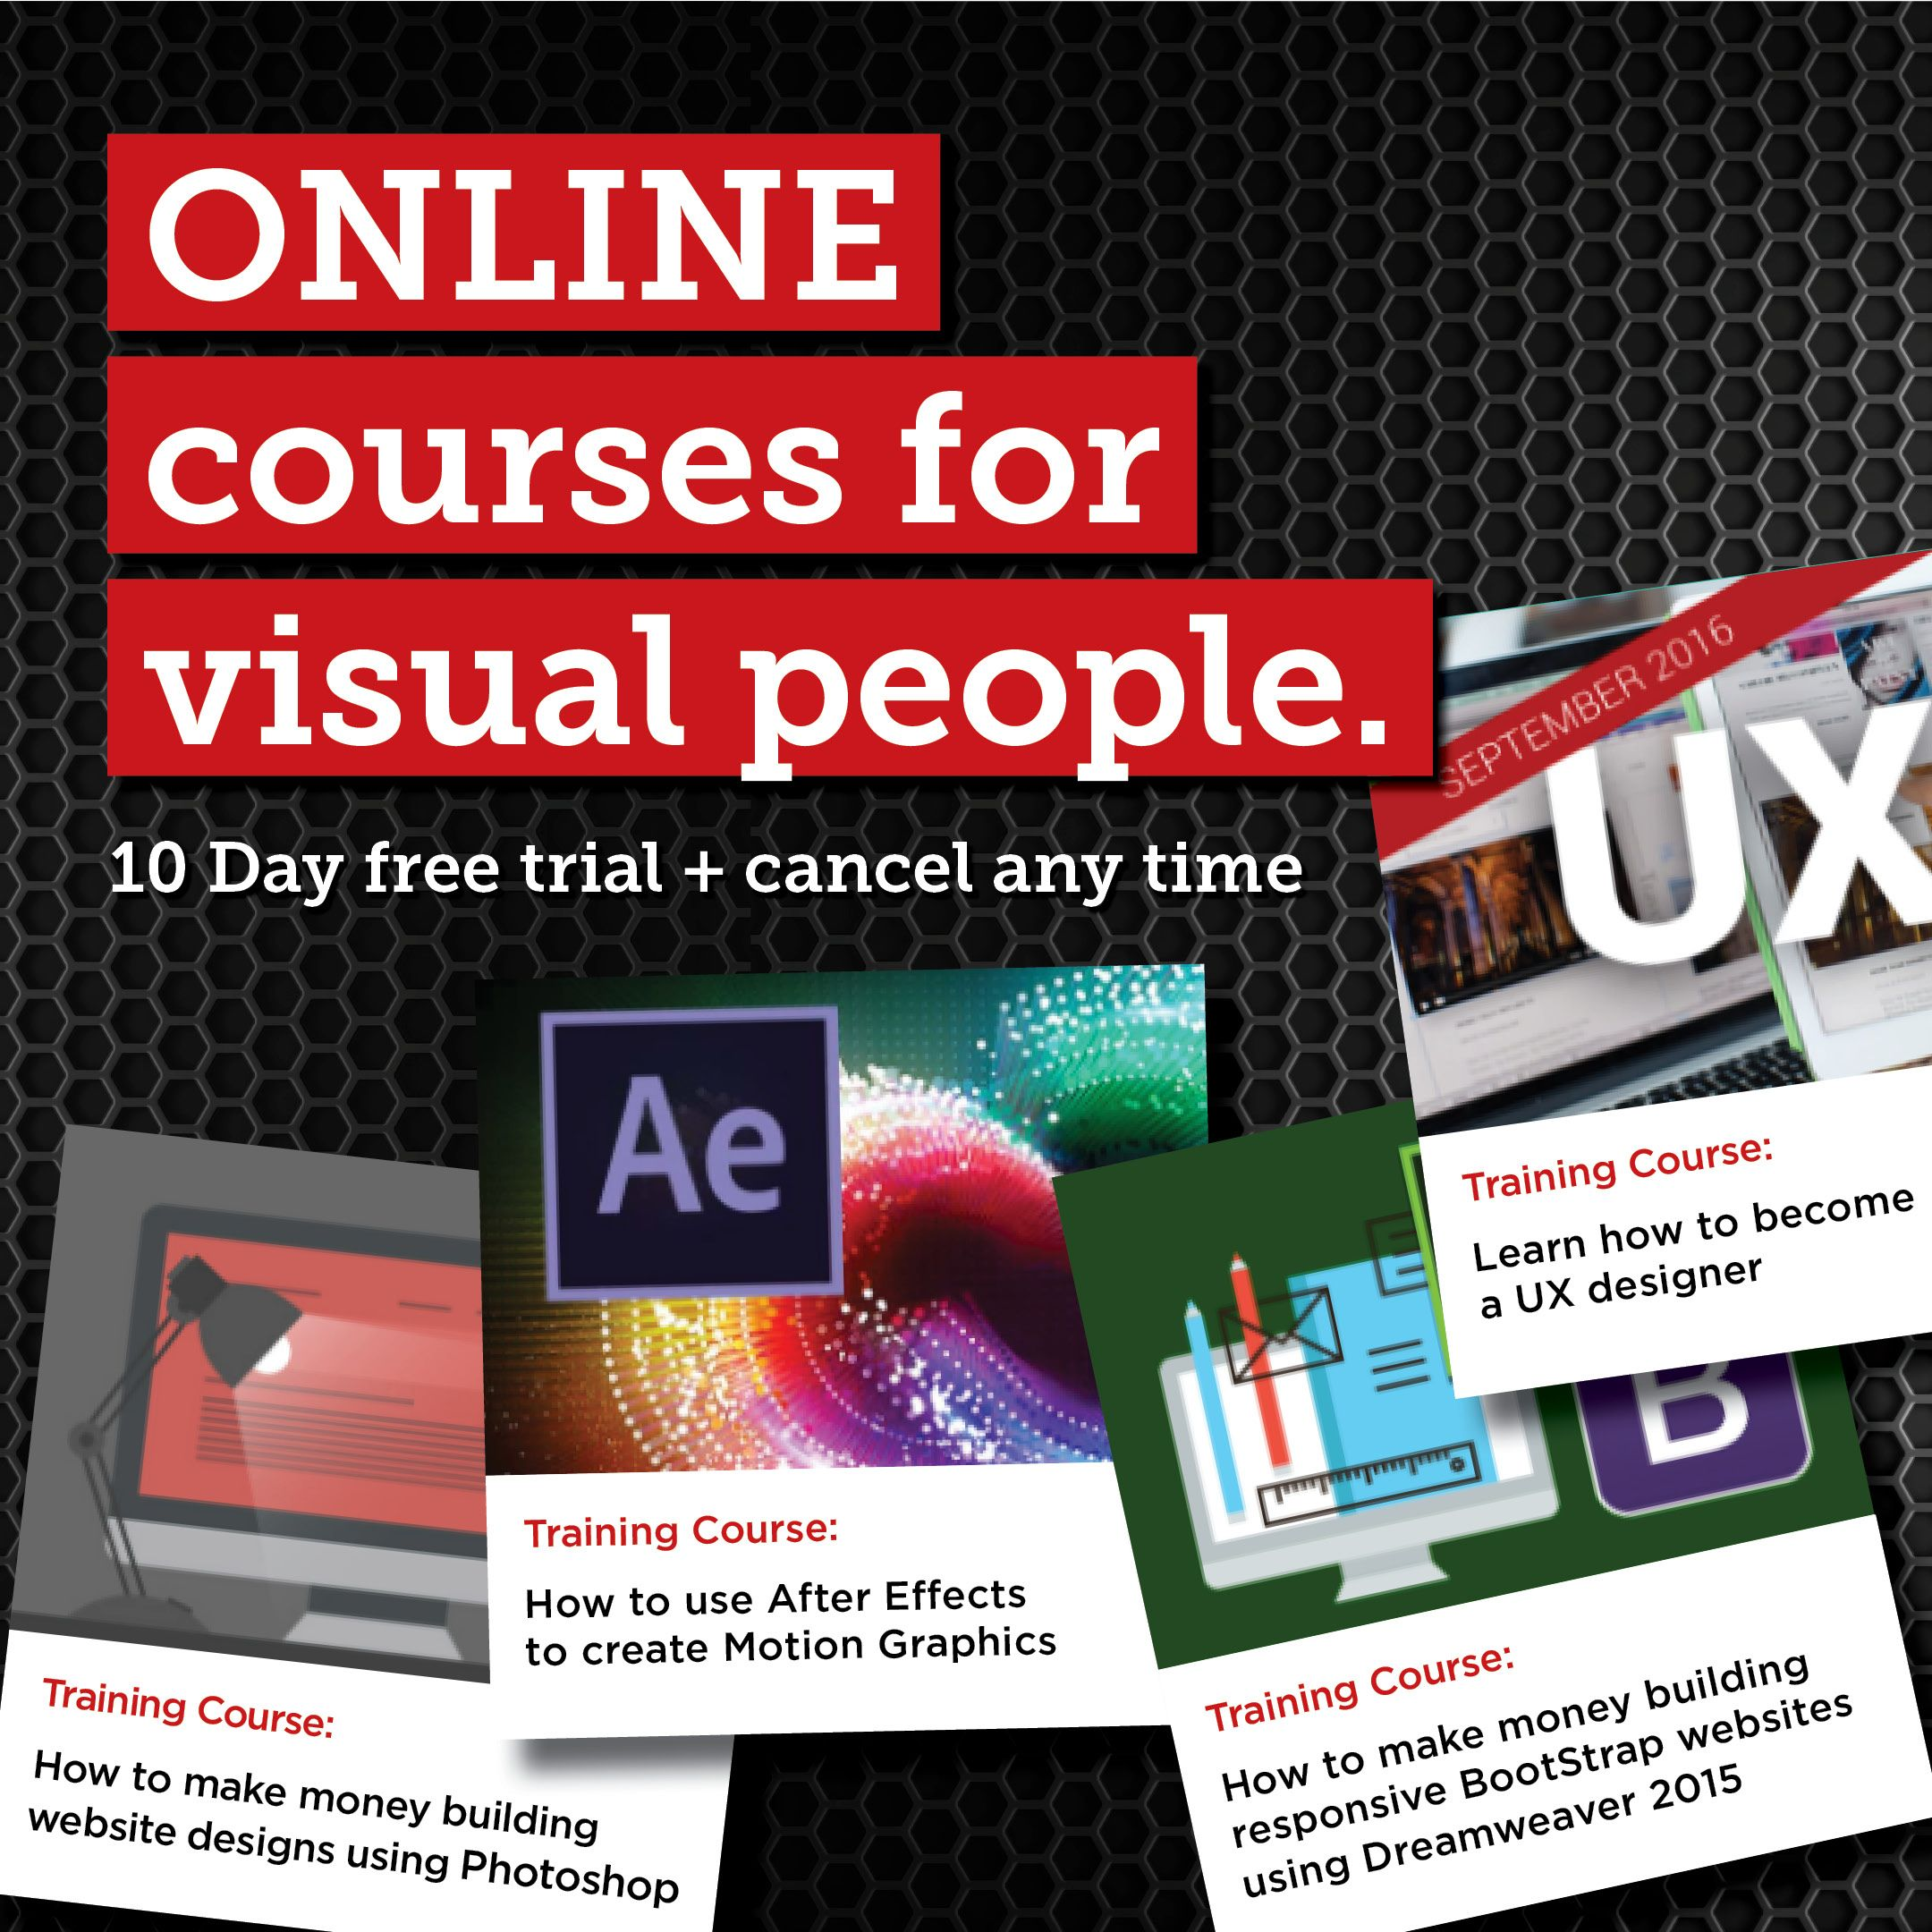 ONLINE courses for visual people  10 day free trial  Cancel